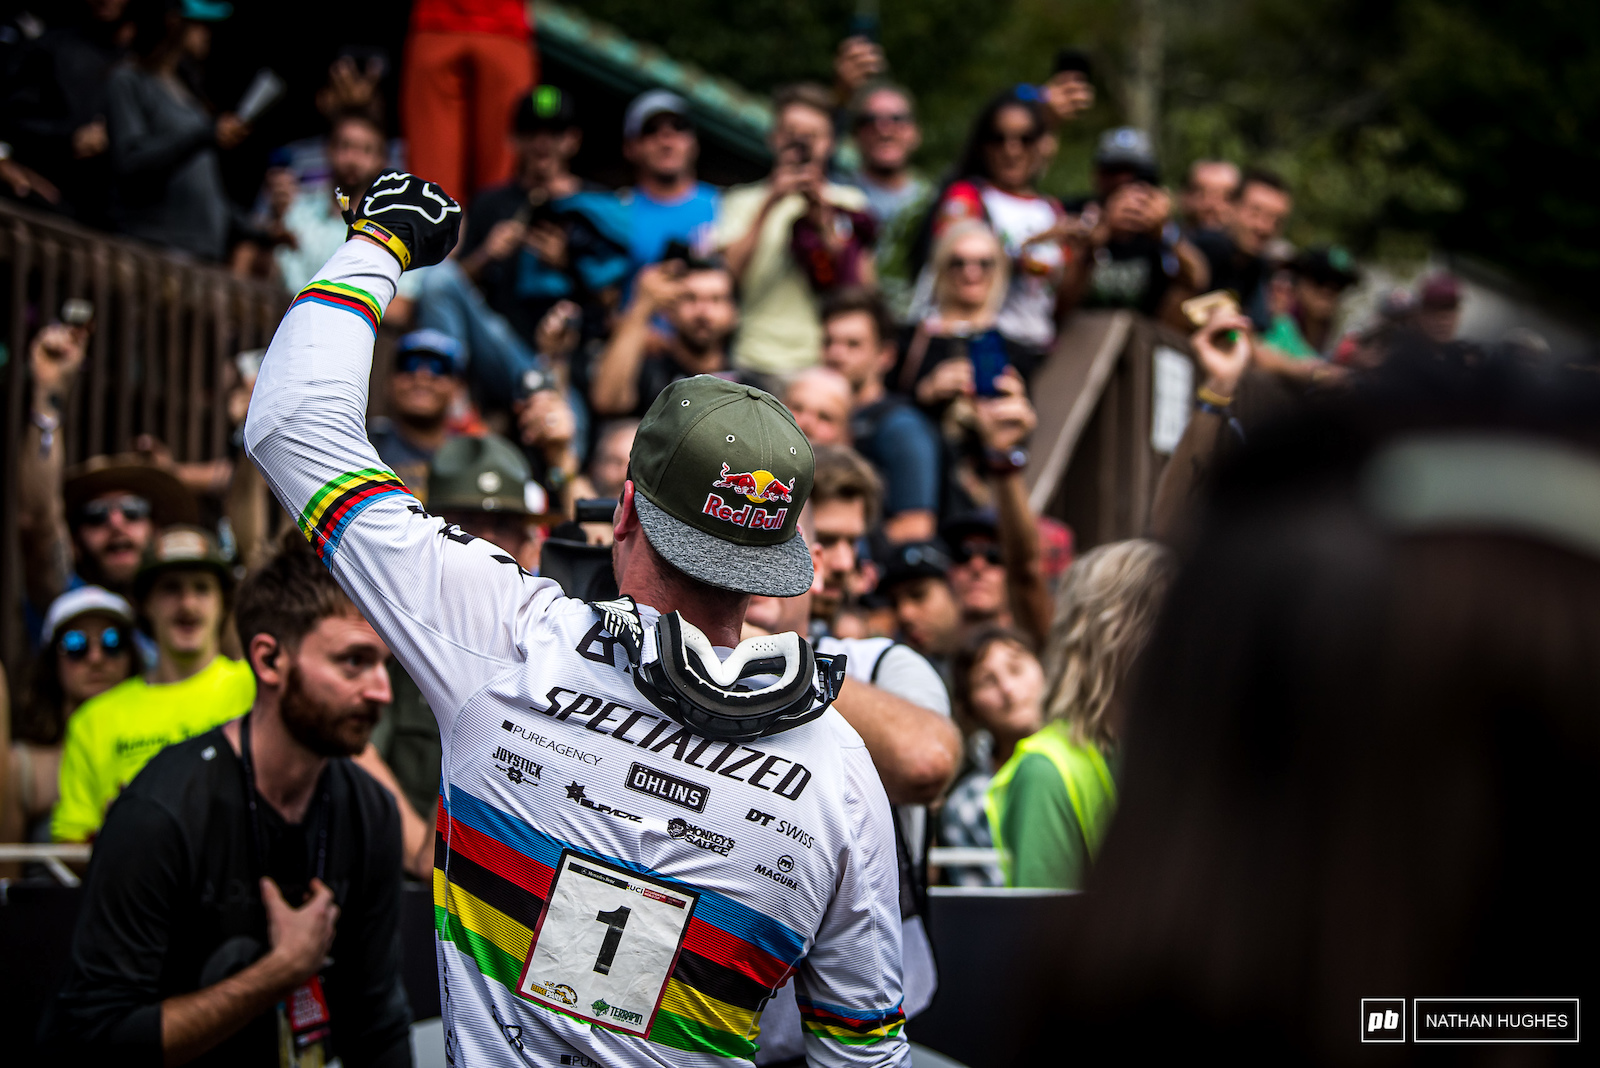 It s been some time since we saw a man in a World Champs jersey claim the World Cup overall. Stats enthusiasts please chime in...